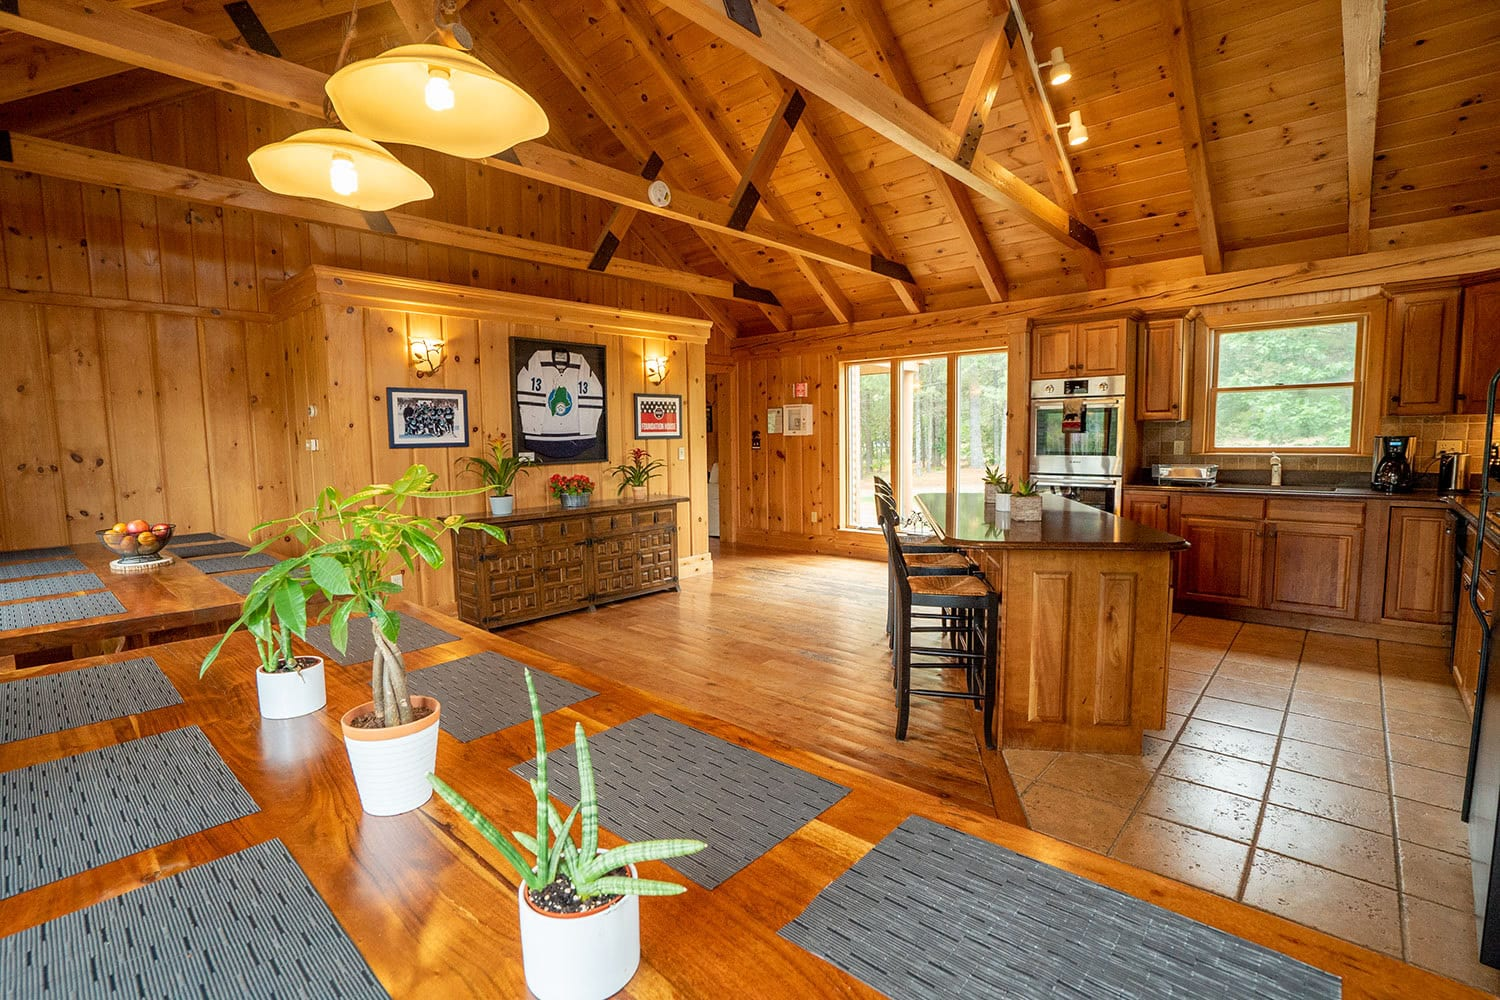 A photo of the kitchen and dining area at Foundation House's FoxHole Ranch.